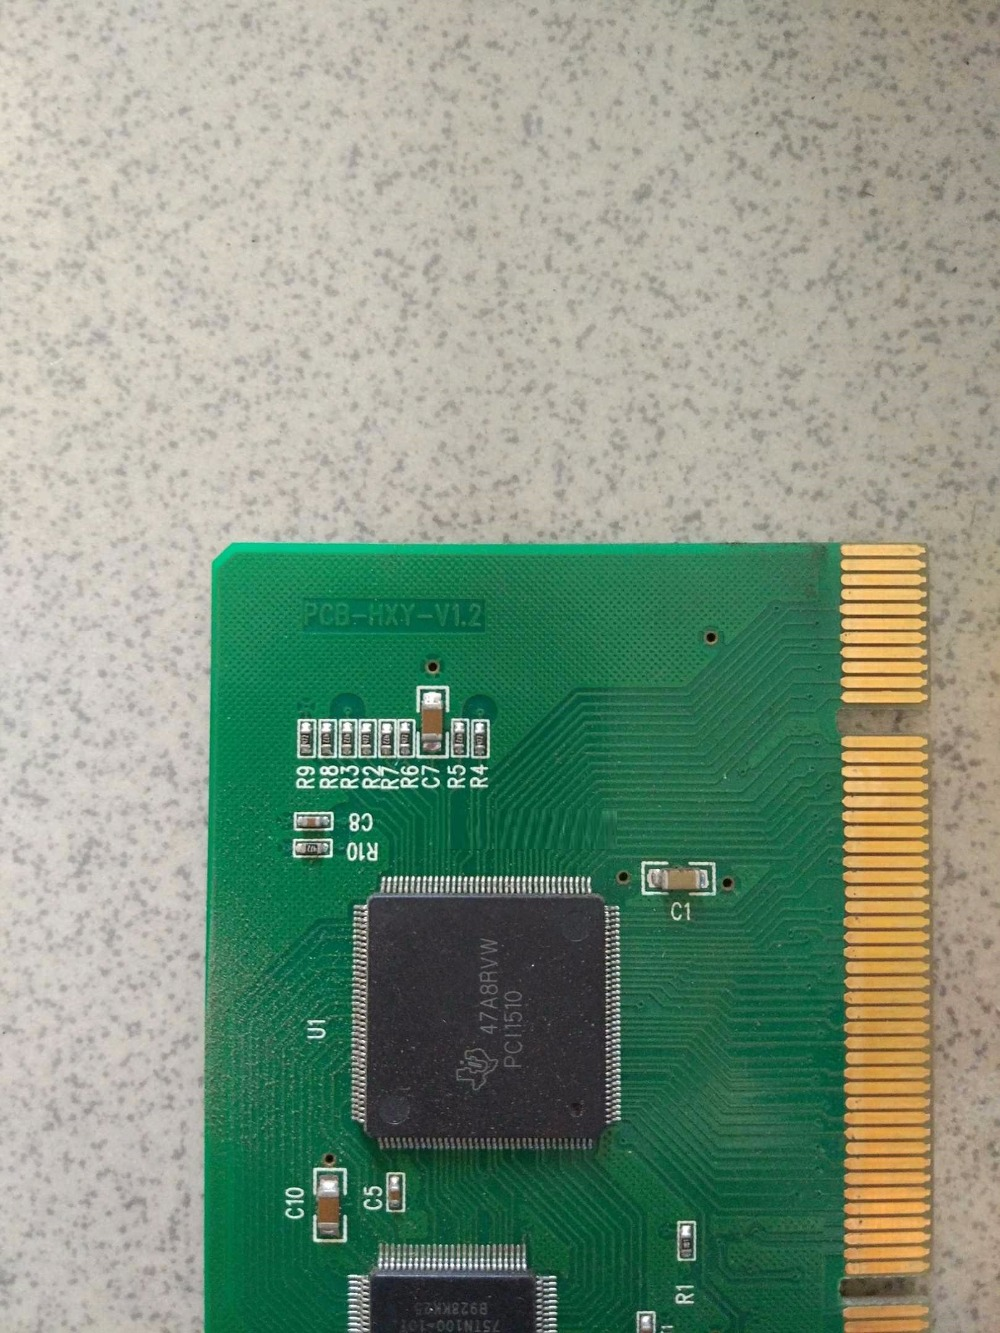 PCB HXY V1.2 communication card, used in good condition